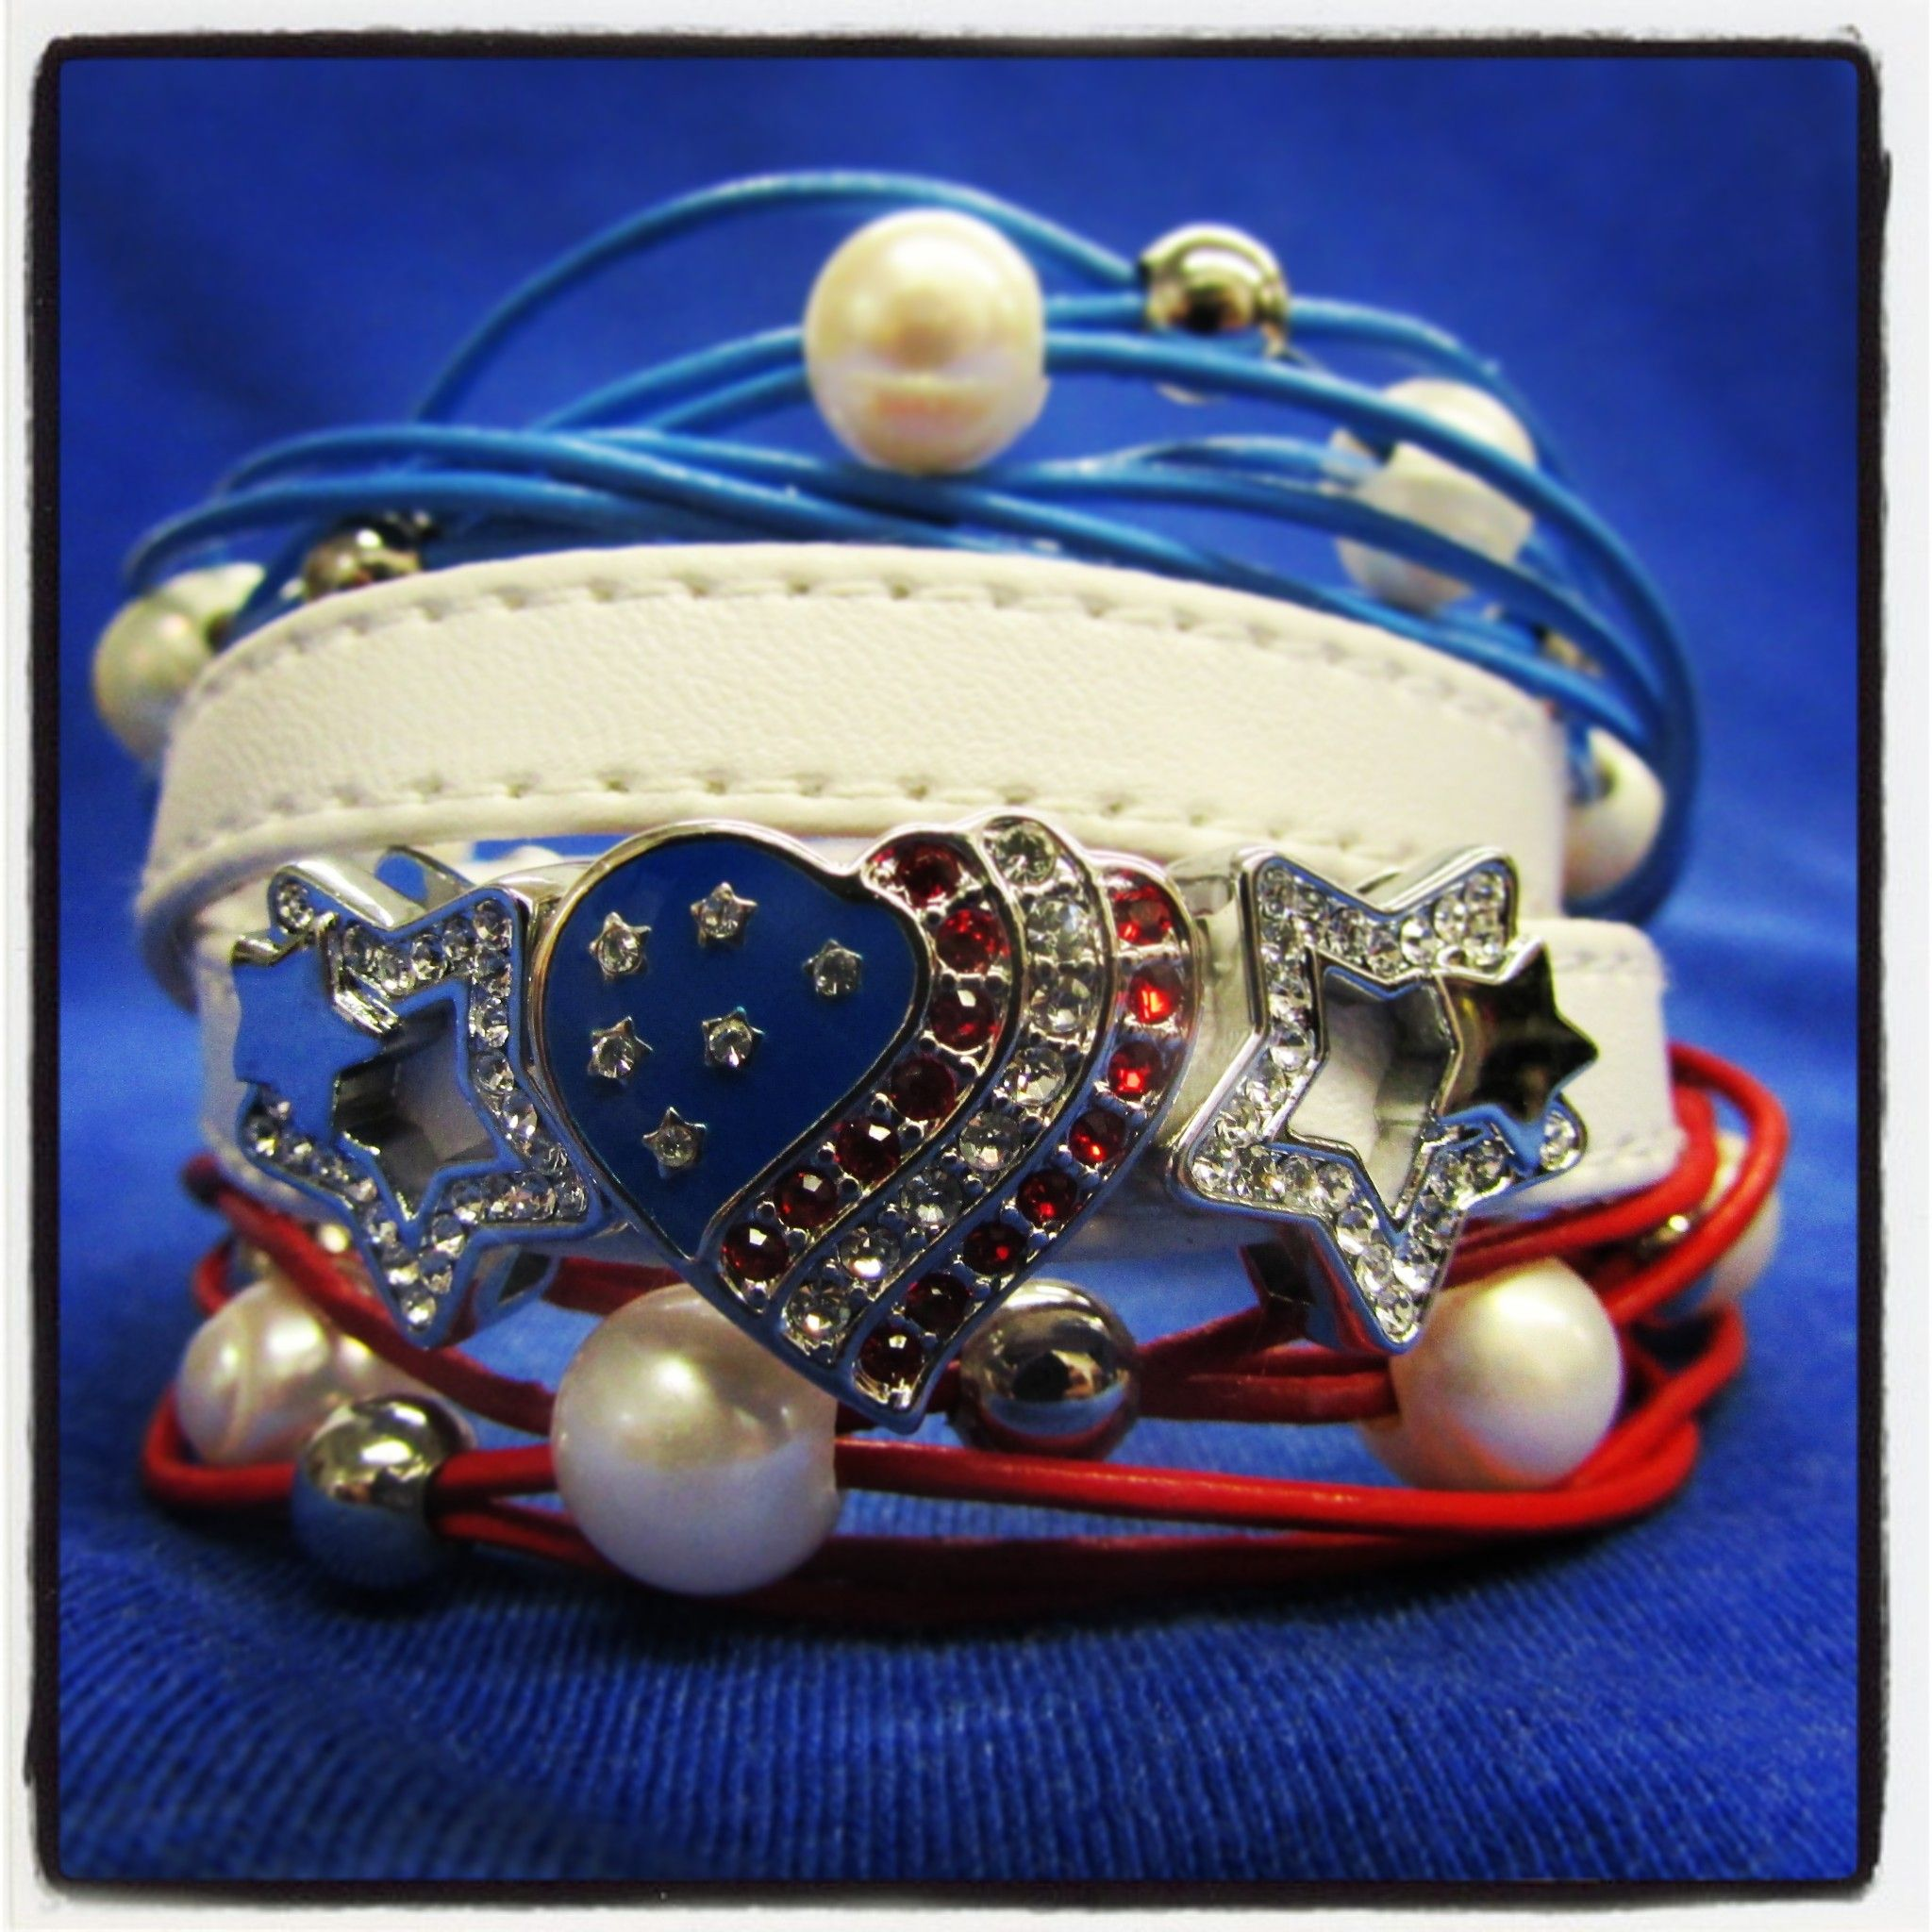 Red, white and blue!! Celebrate the 4th with some super cute accessories #bracelet #heart #charms #stars #vivacious #doublewrap http://www.sugarandvine.com/charms-and-letters/symbols/symbols-american-flag-heart.html